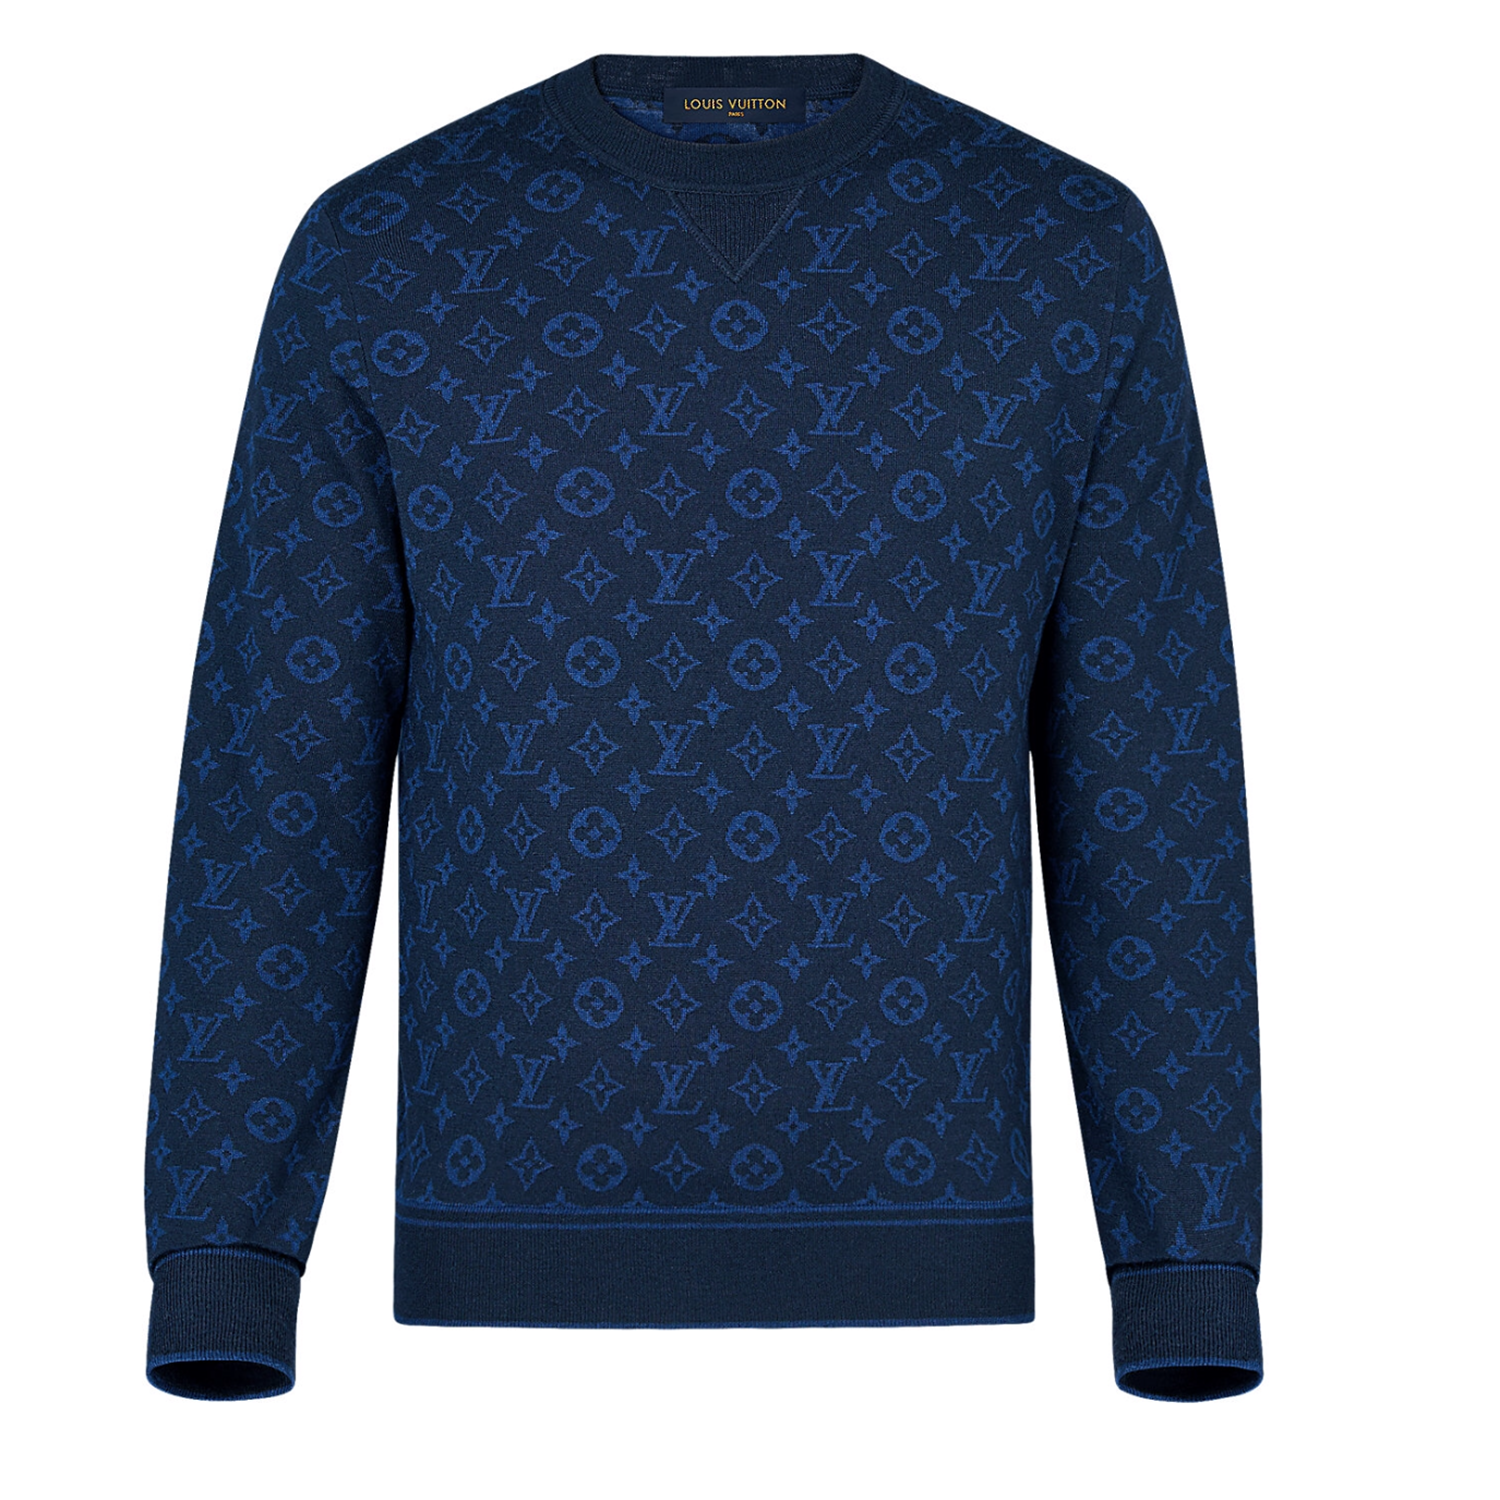 ALL OVER MONO CREW NECK  -  €850 $12201A46PQMONOGRAM JACQUARD